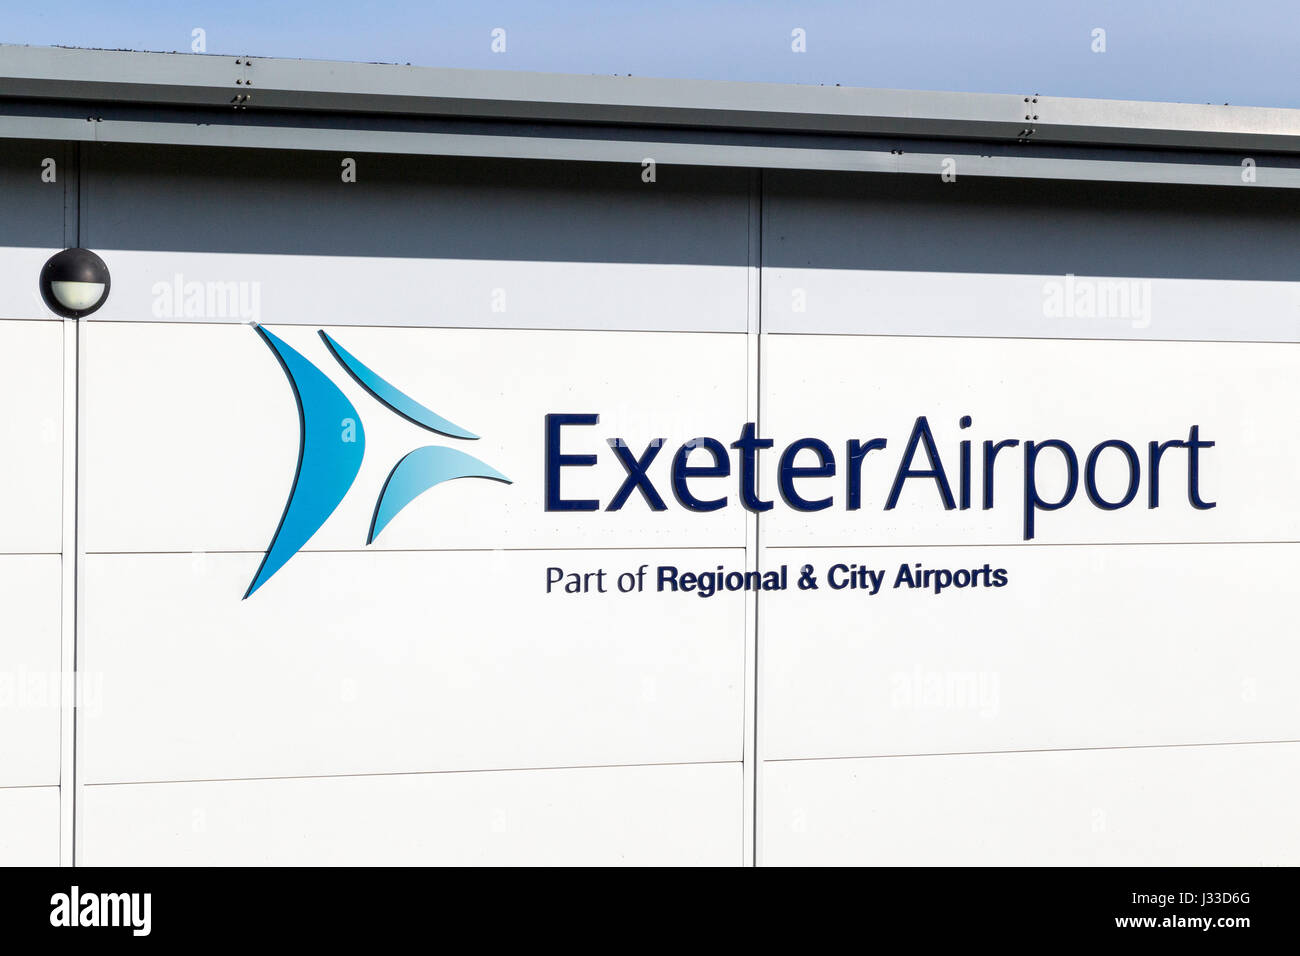 exeter airport uk